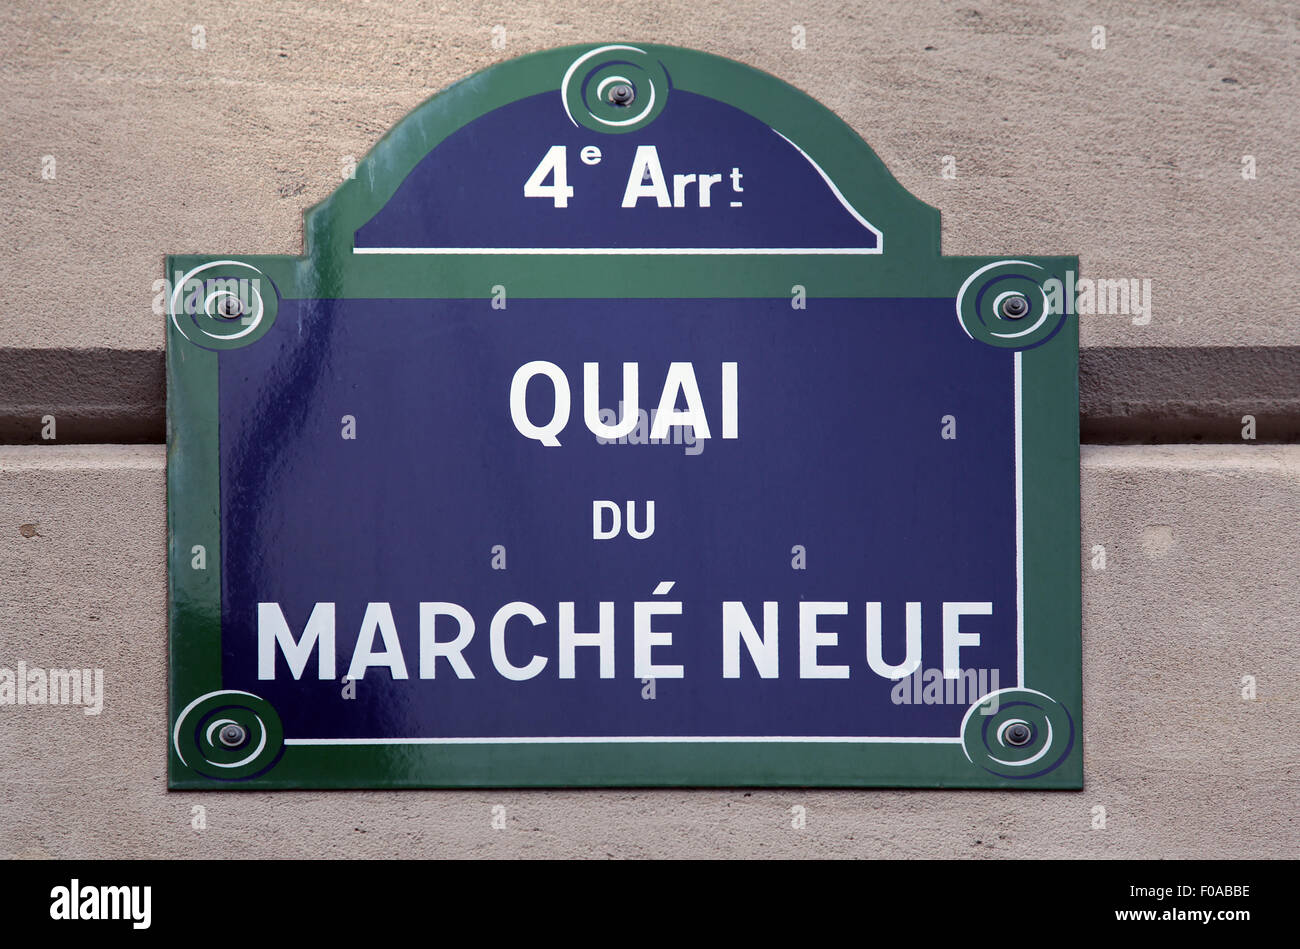 Street sign Quai du marché Neuf in Paris France - Stock Image